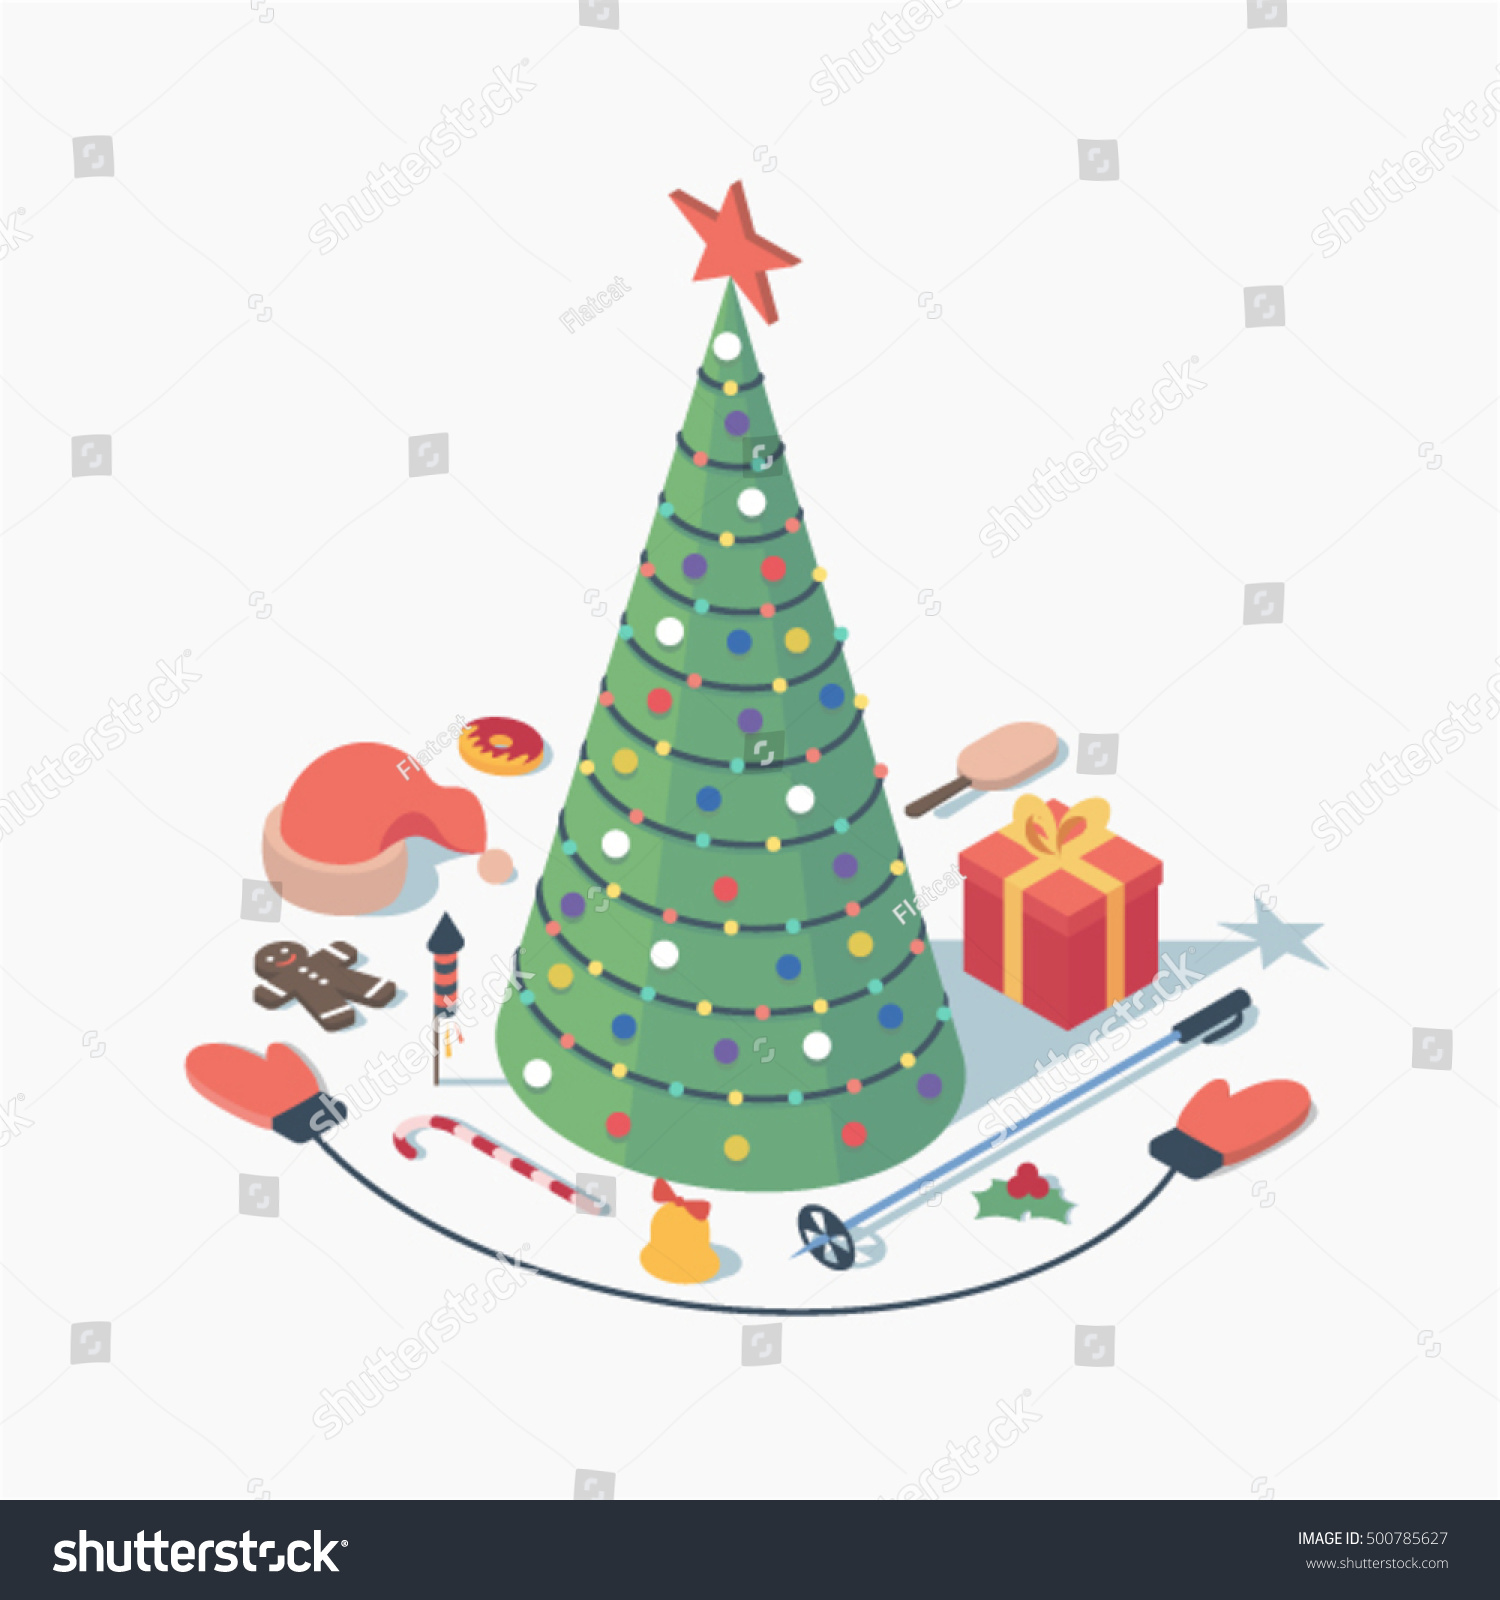 Christmas Vector Isometric Concept Illustration 3 D Stock Vector ...